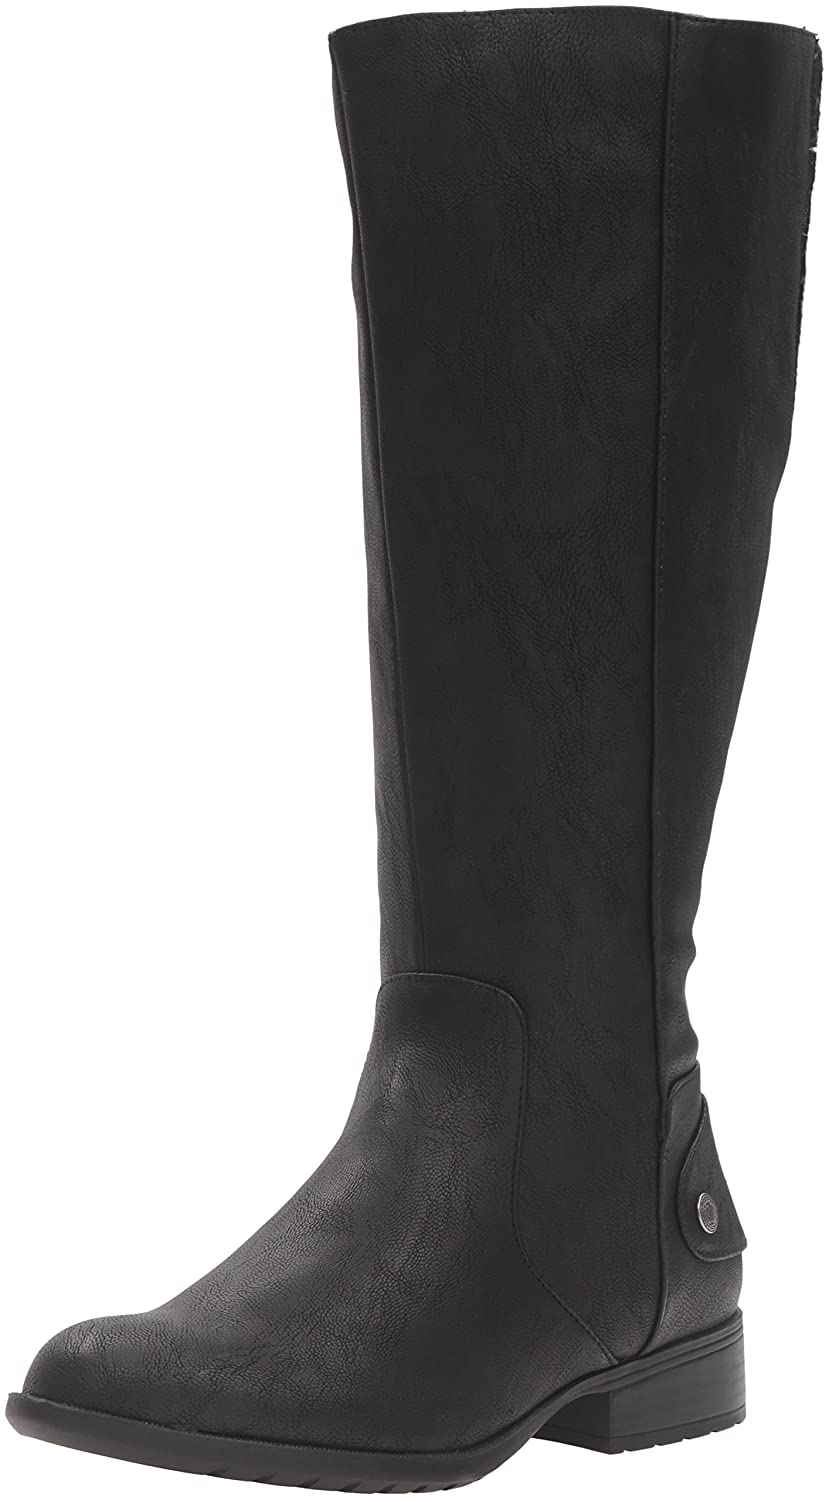 LifeStride Women's Xandywc Riding Boot- Wide Calf B01DV98PXU 10 W US|Black